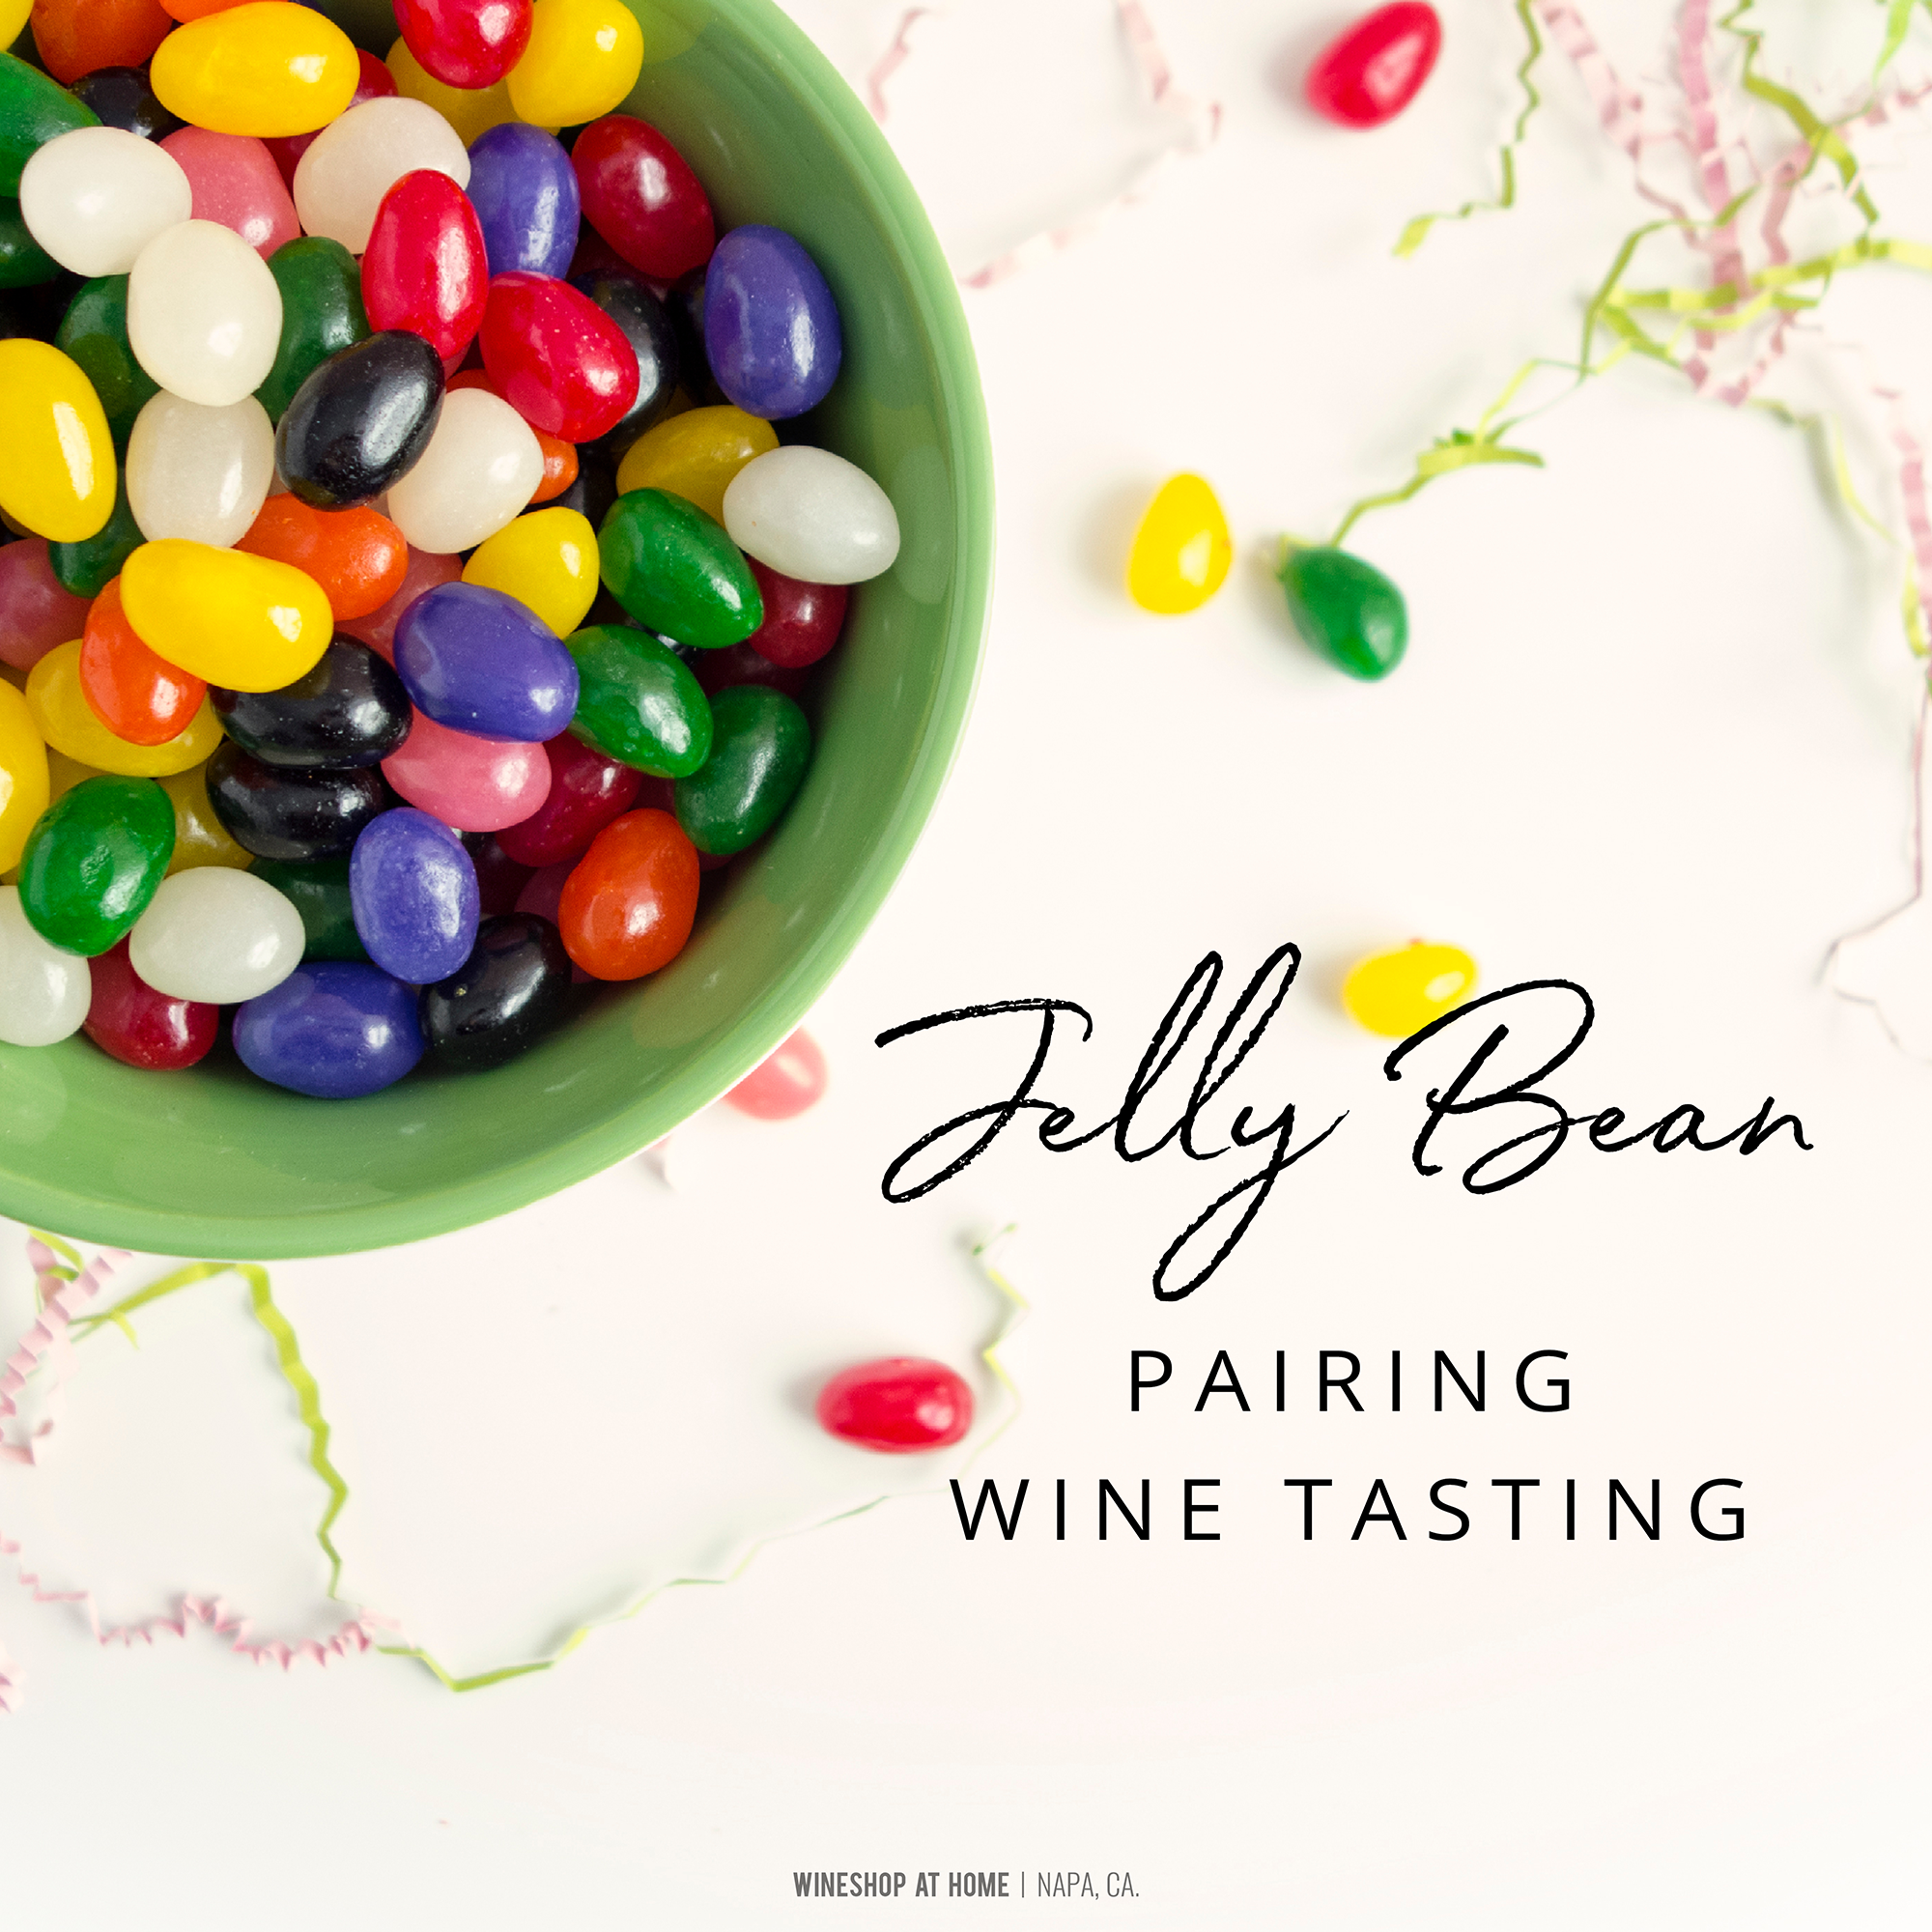 National Jelly Bean Day Is April 22nd There Are 50 Official Jelly Bean Flavors And Some Wacky Ones Too At A Jelly B Jelly Bean Flavors Wine Tasting Tasting